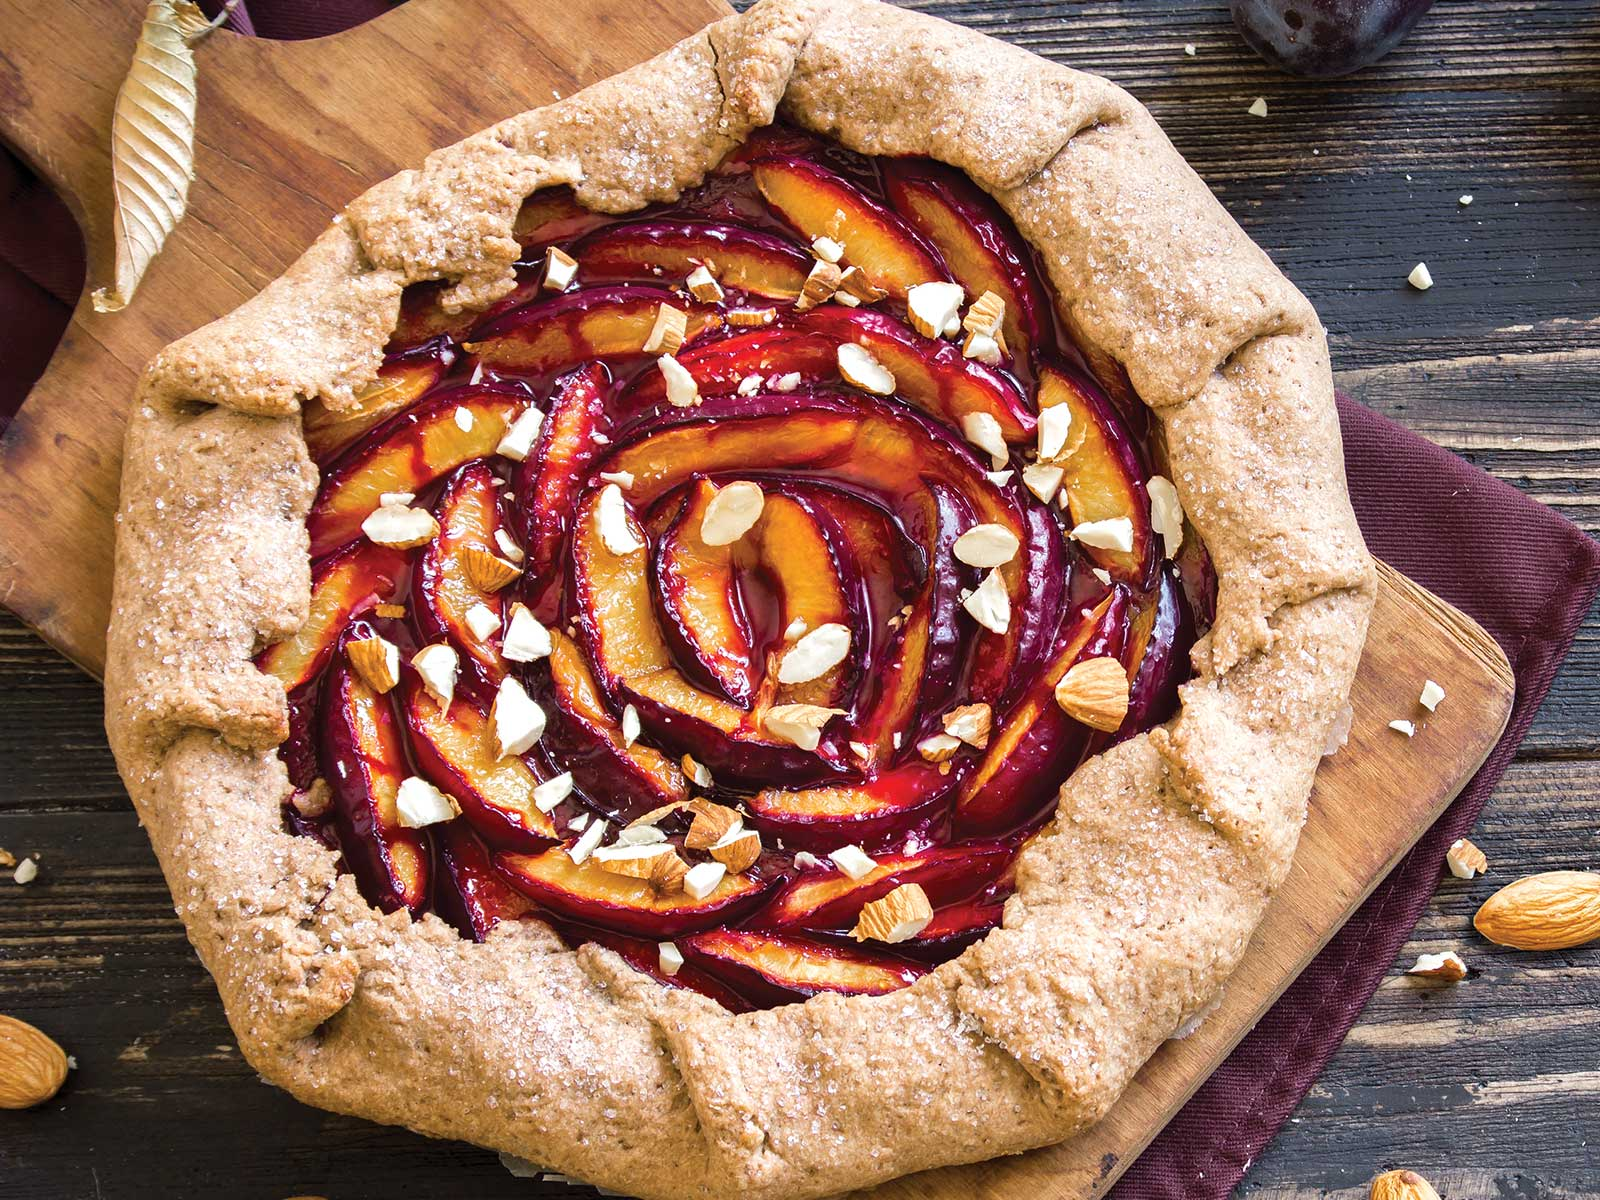 Rustic tart with almonds